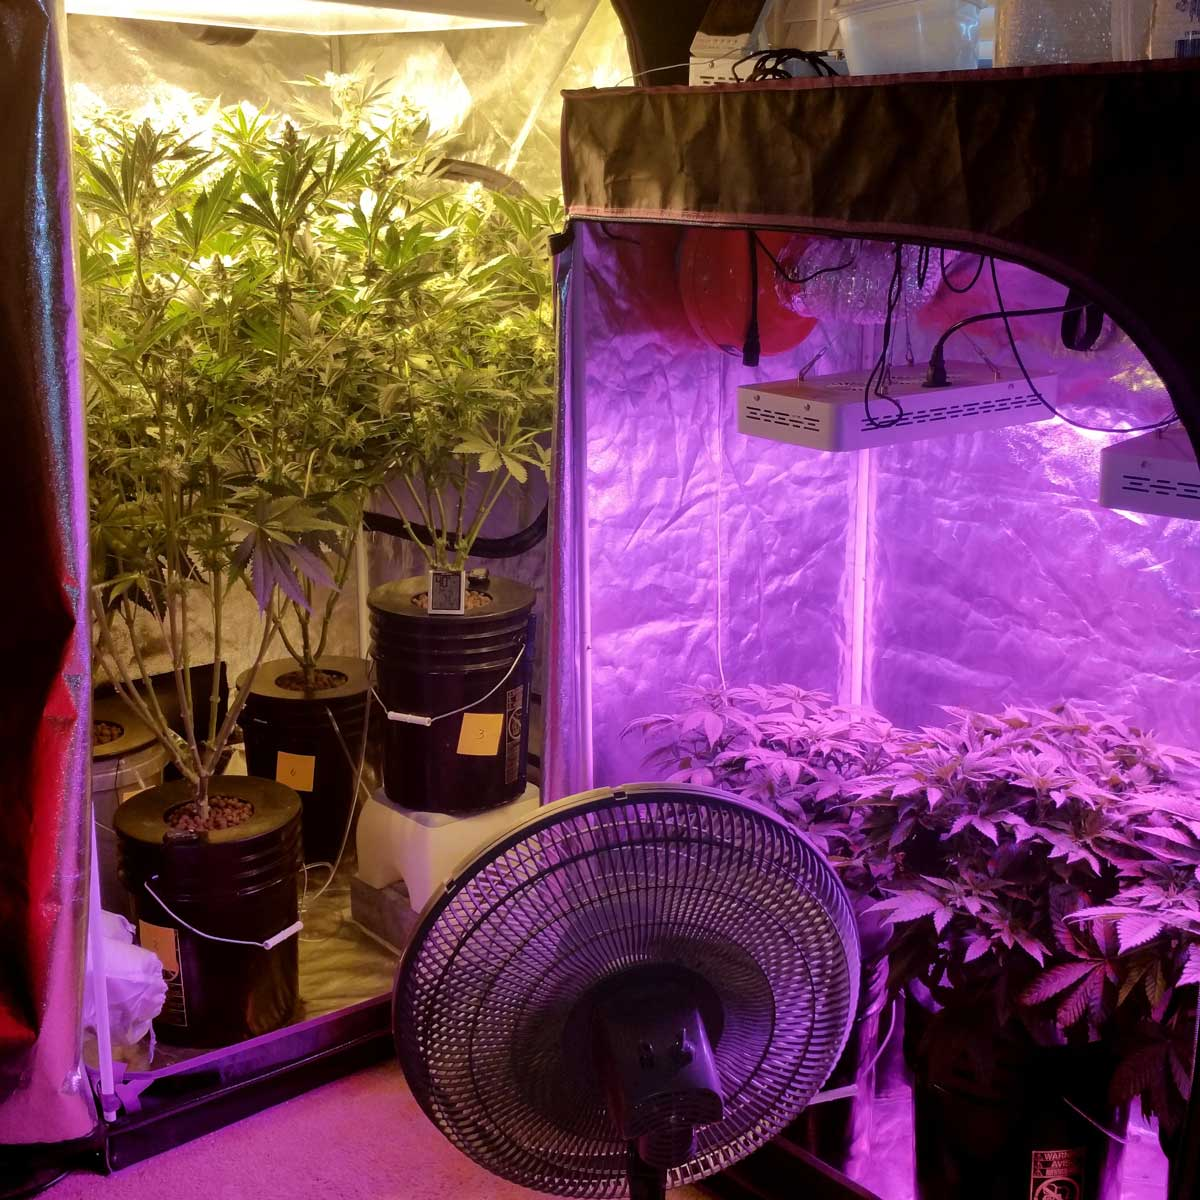 The Perpetual Harvest: How to Grow Unlimited Weed!